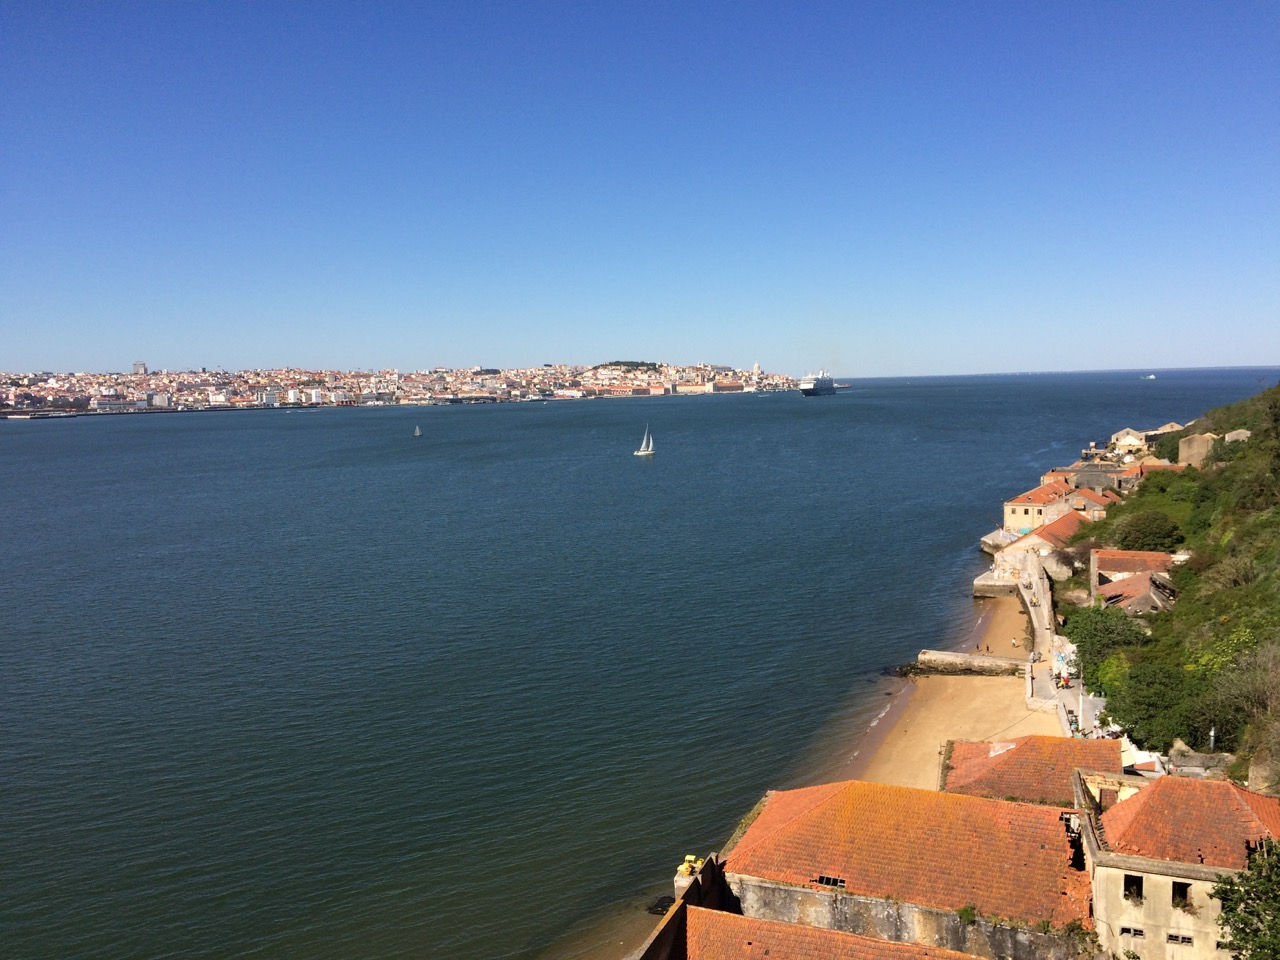 Lisbon from across the river